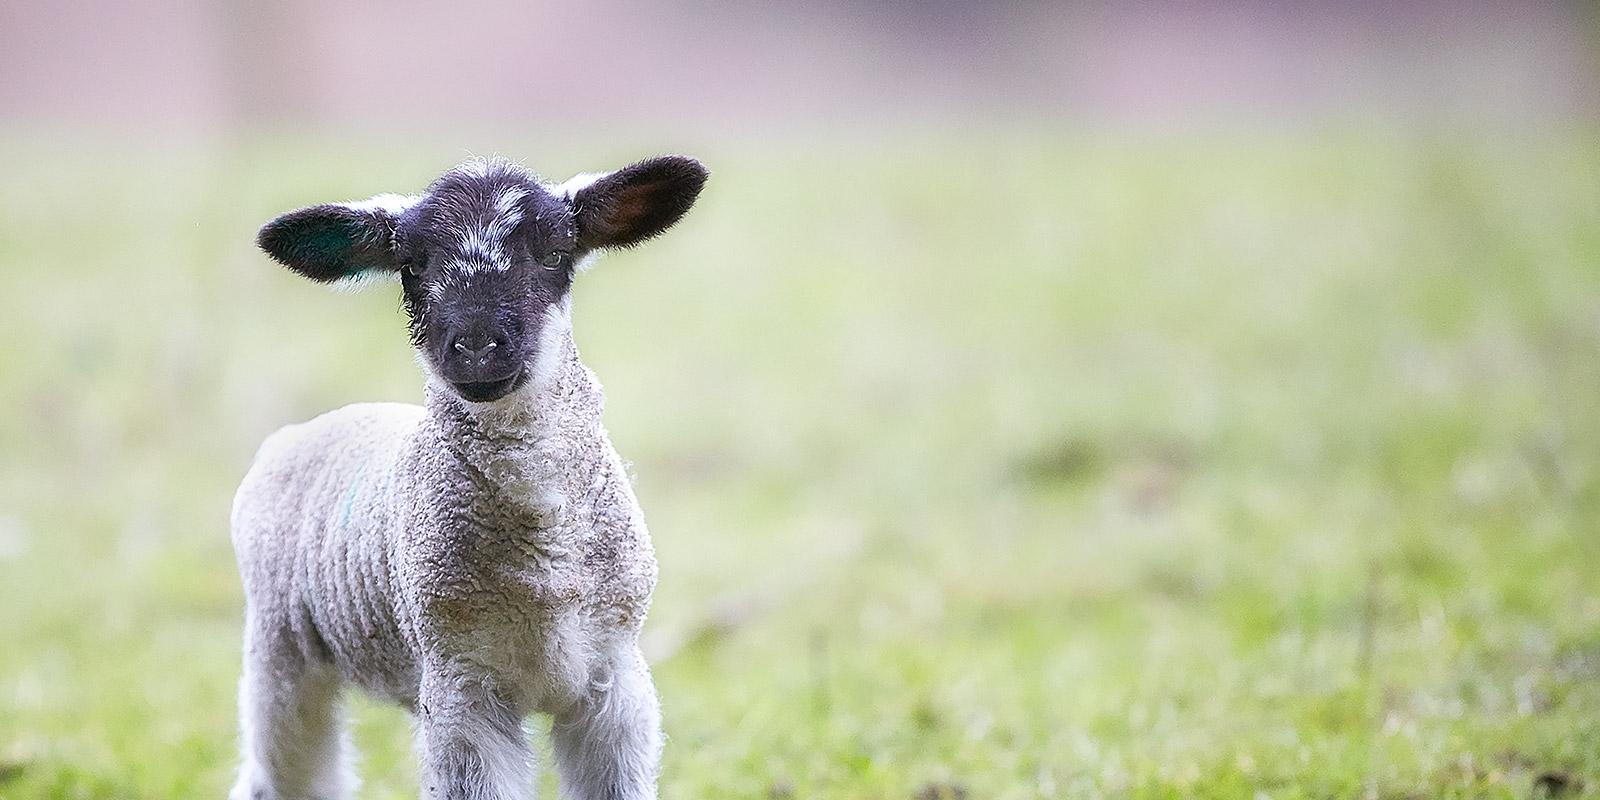 Salt Spring Lamb ©johncameron.ca